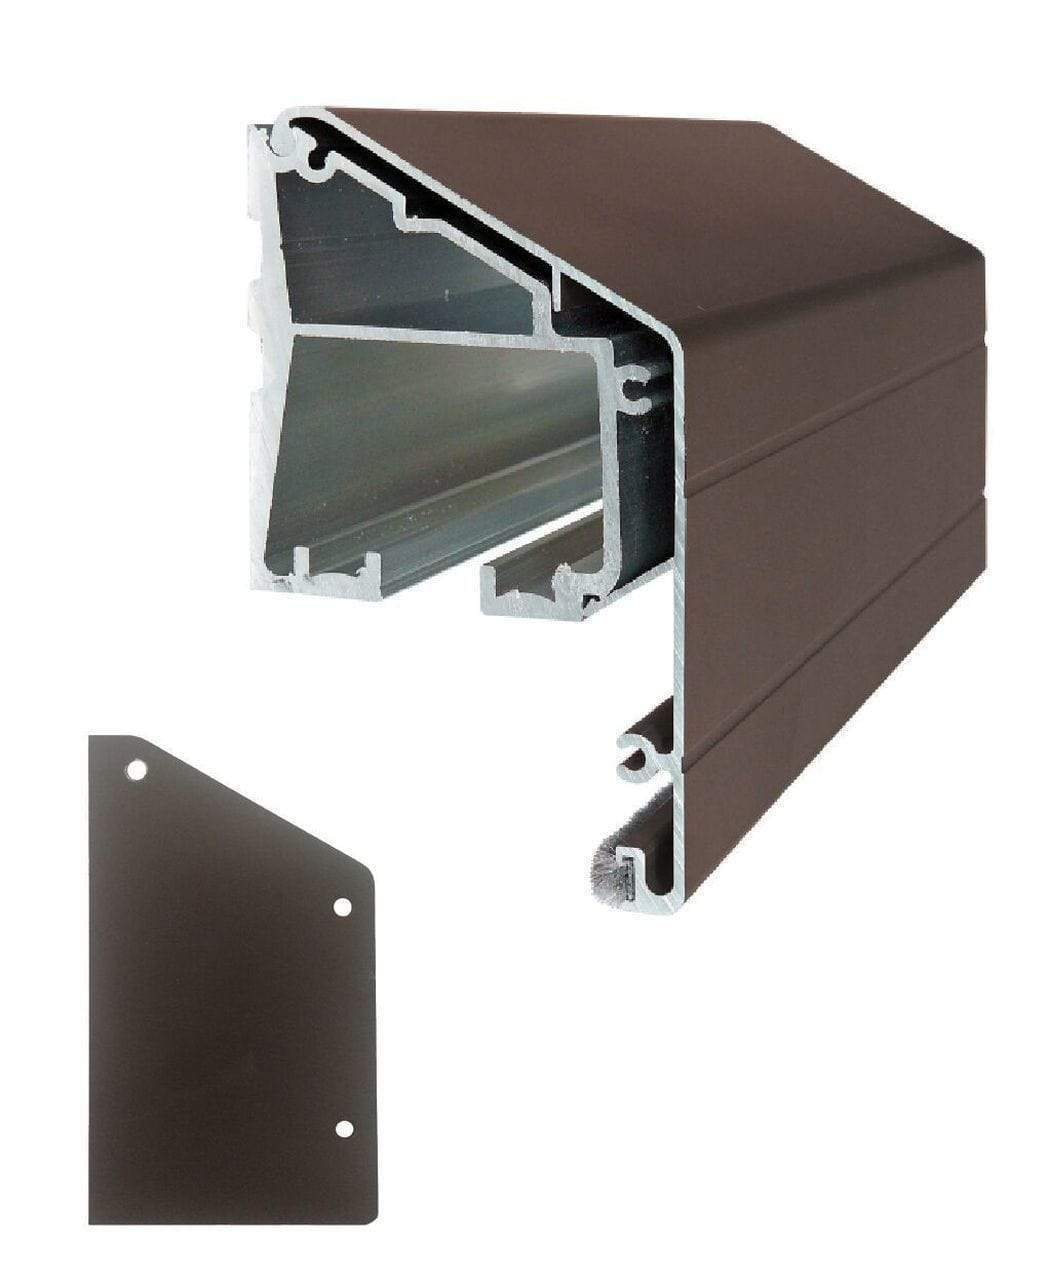 Wall Mount Sliding Door Track Kit - Sliding Barn Door Hardware by RealCraft